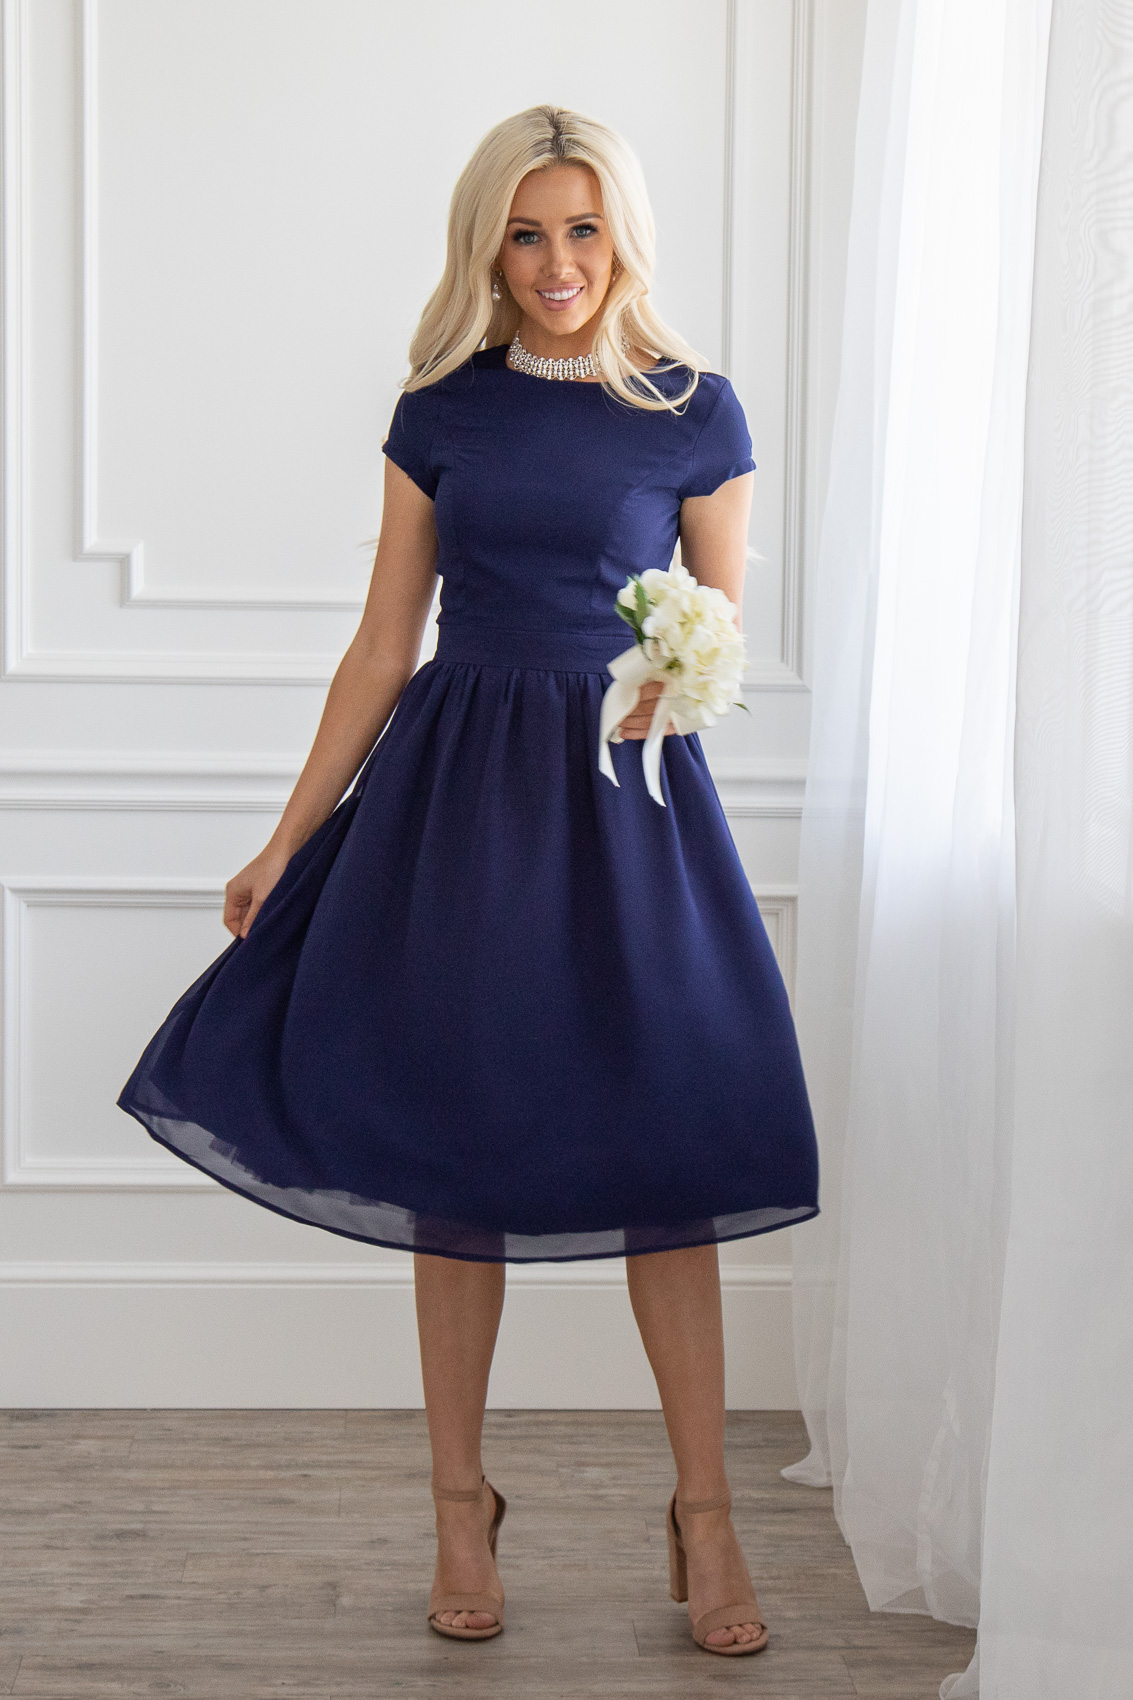 Jenclothing S Lucy Semi Formal Modest Dress In Navy Blue